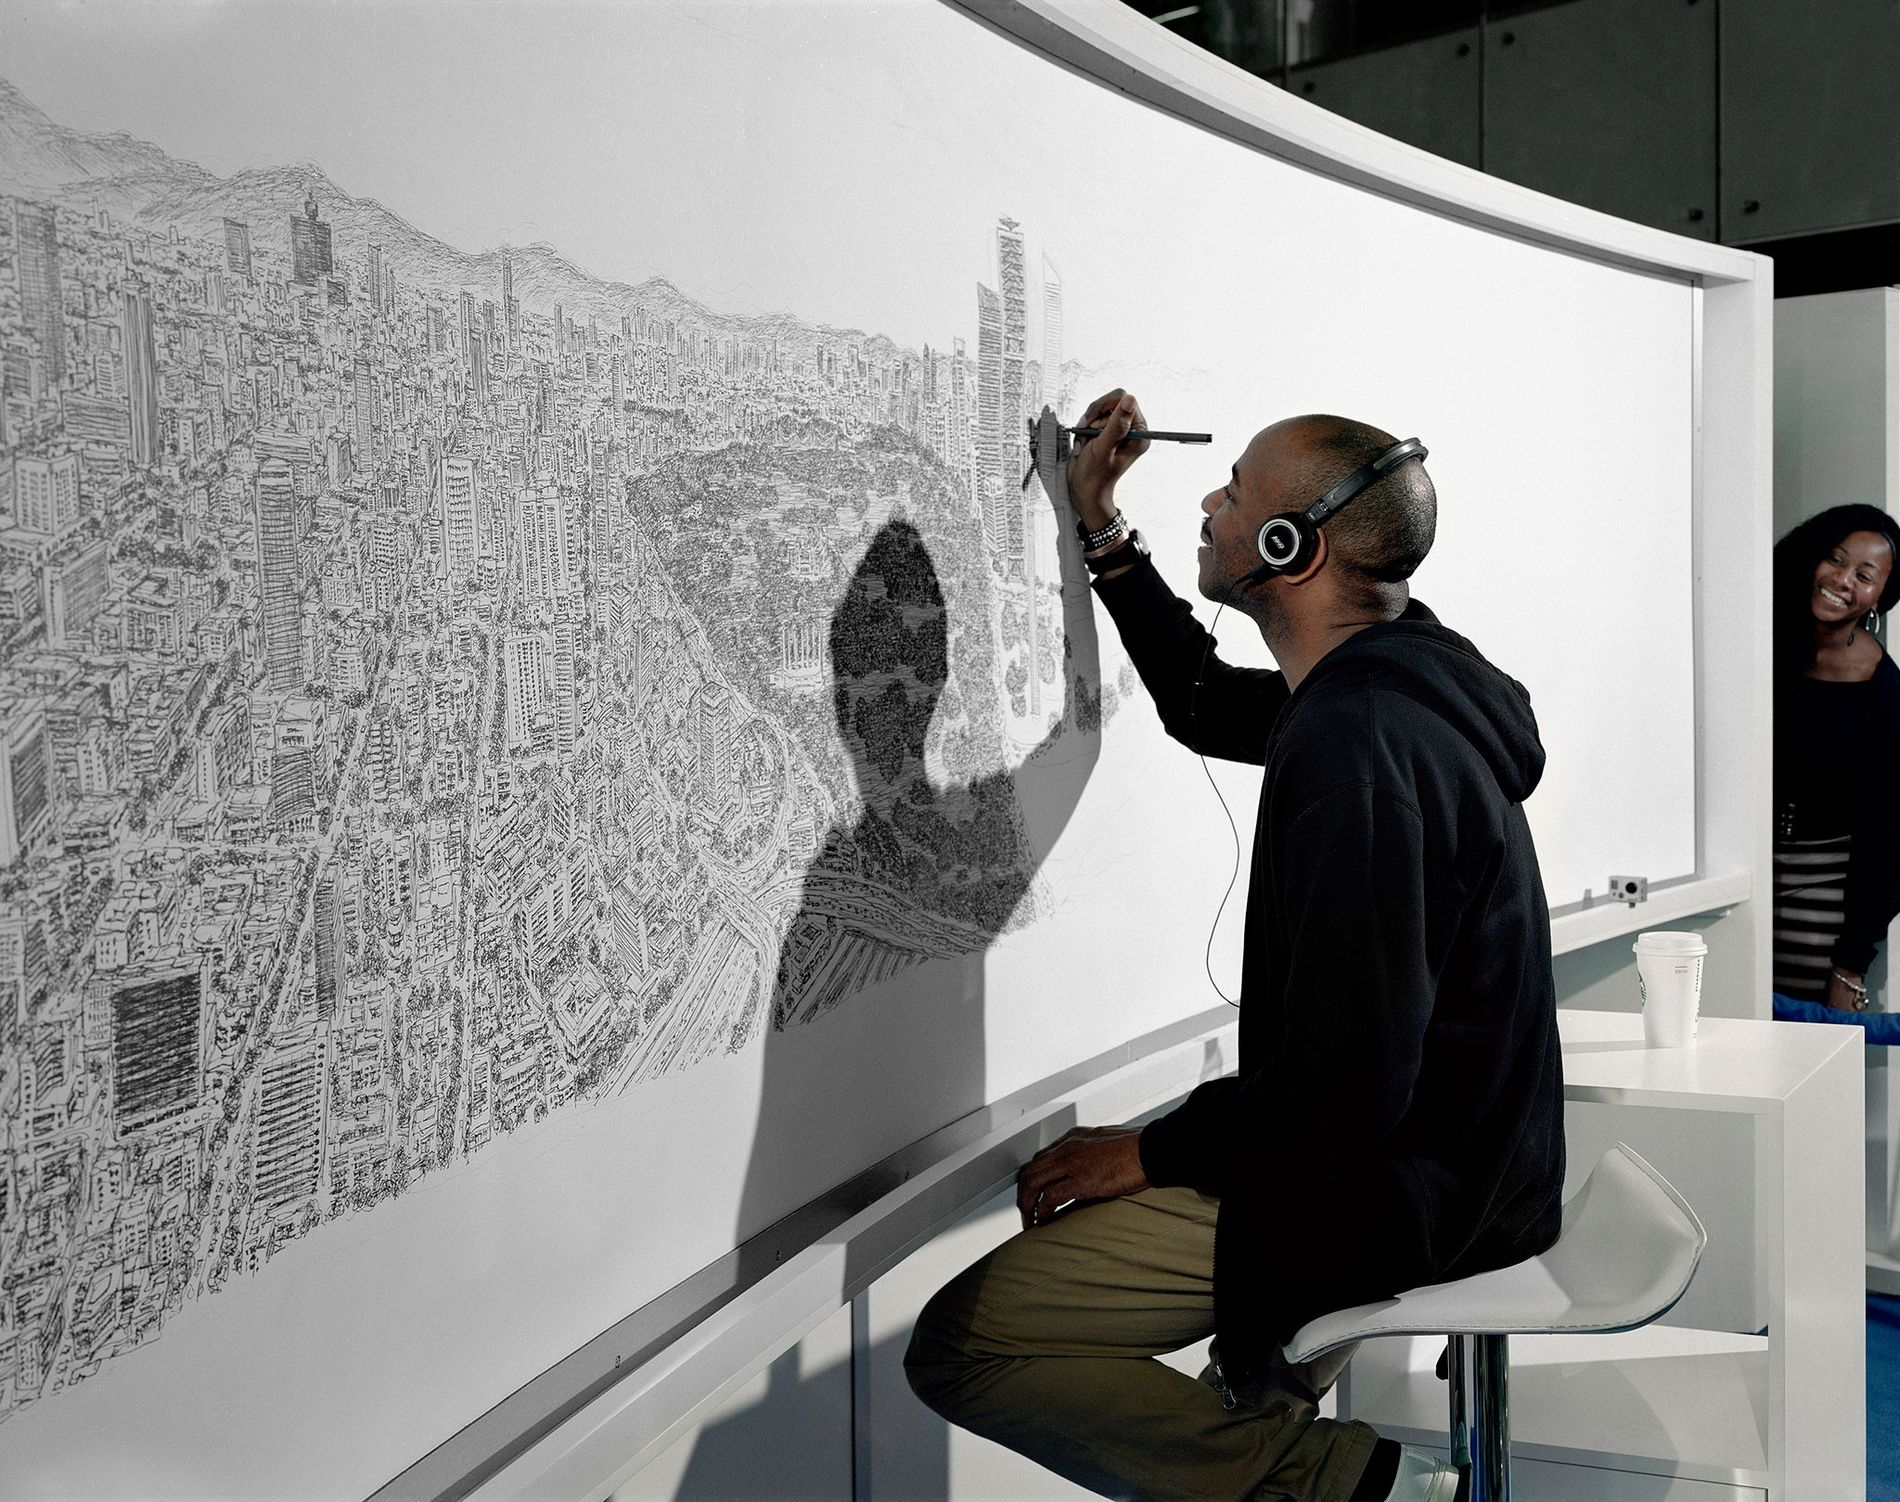 After flying just once over Mexico City, artist Stephen Wiltshire drew the entire cityscape from memory on a 4-metre (13-foot) canvas.